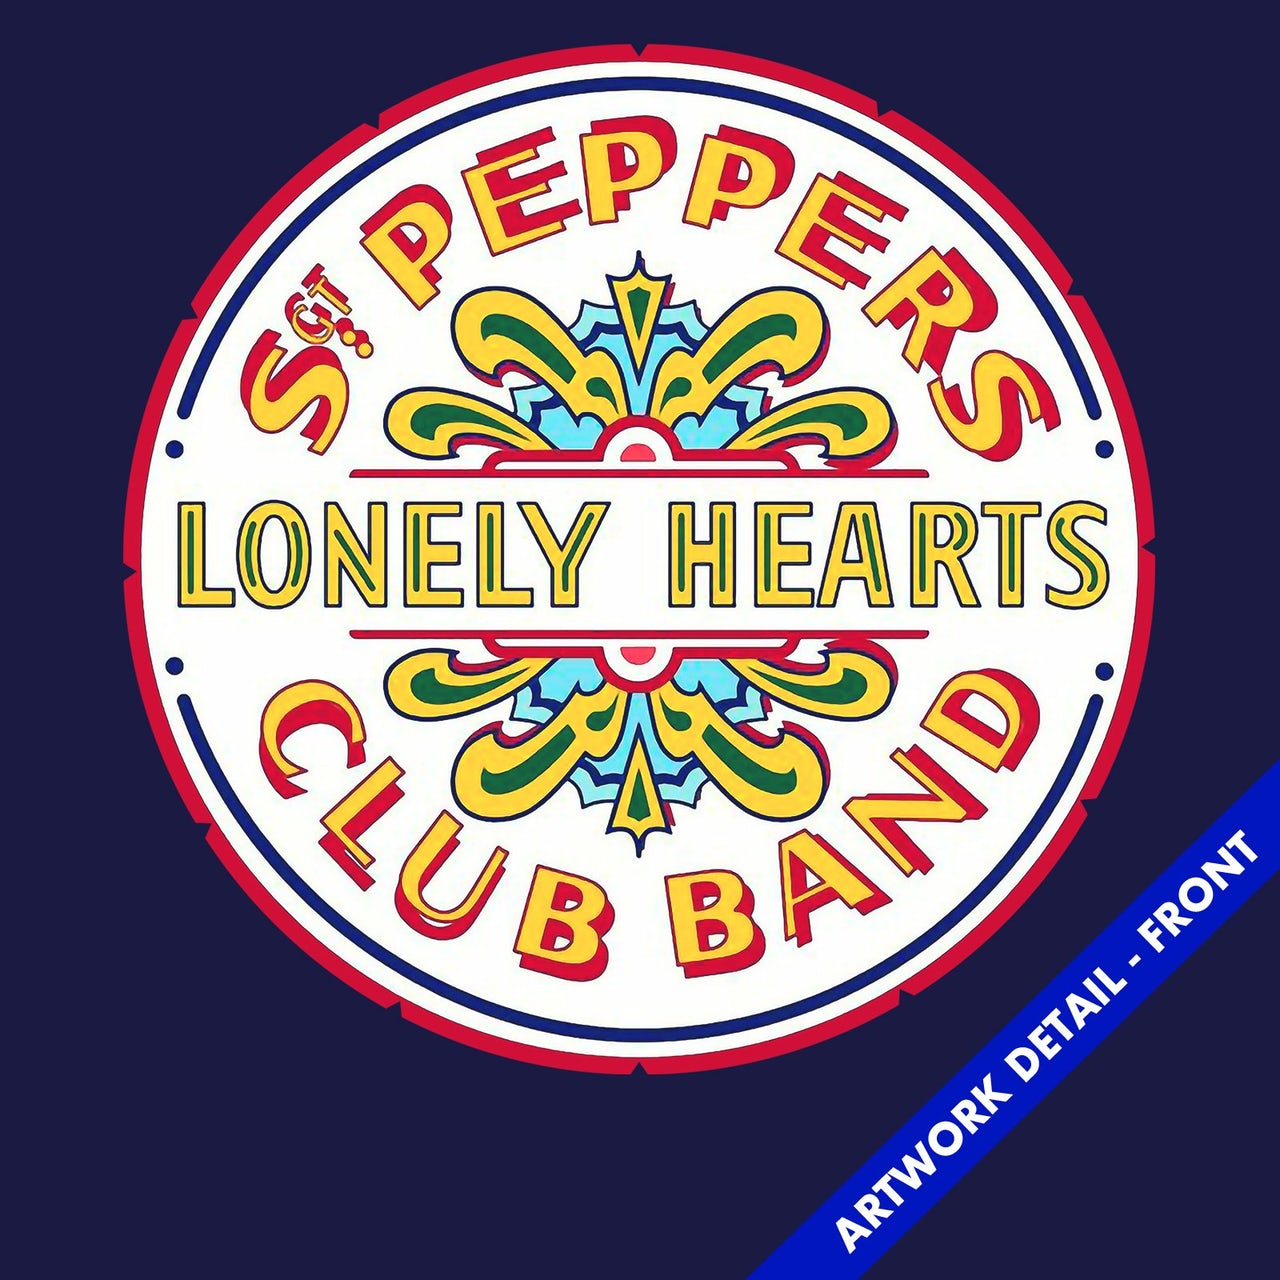 The Beatles T-Shirt | Sgt  Pepper's Lonely Hearts Club Band Logo The  Beatles T-Shirt